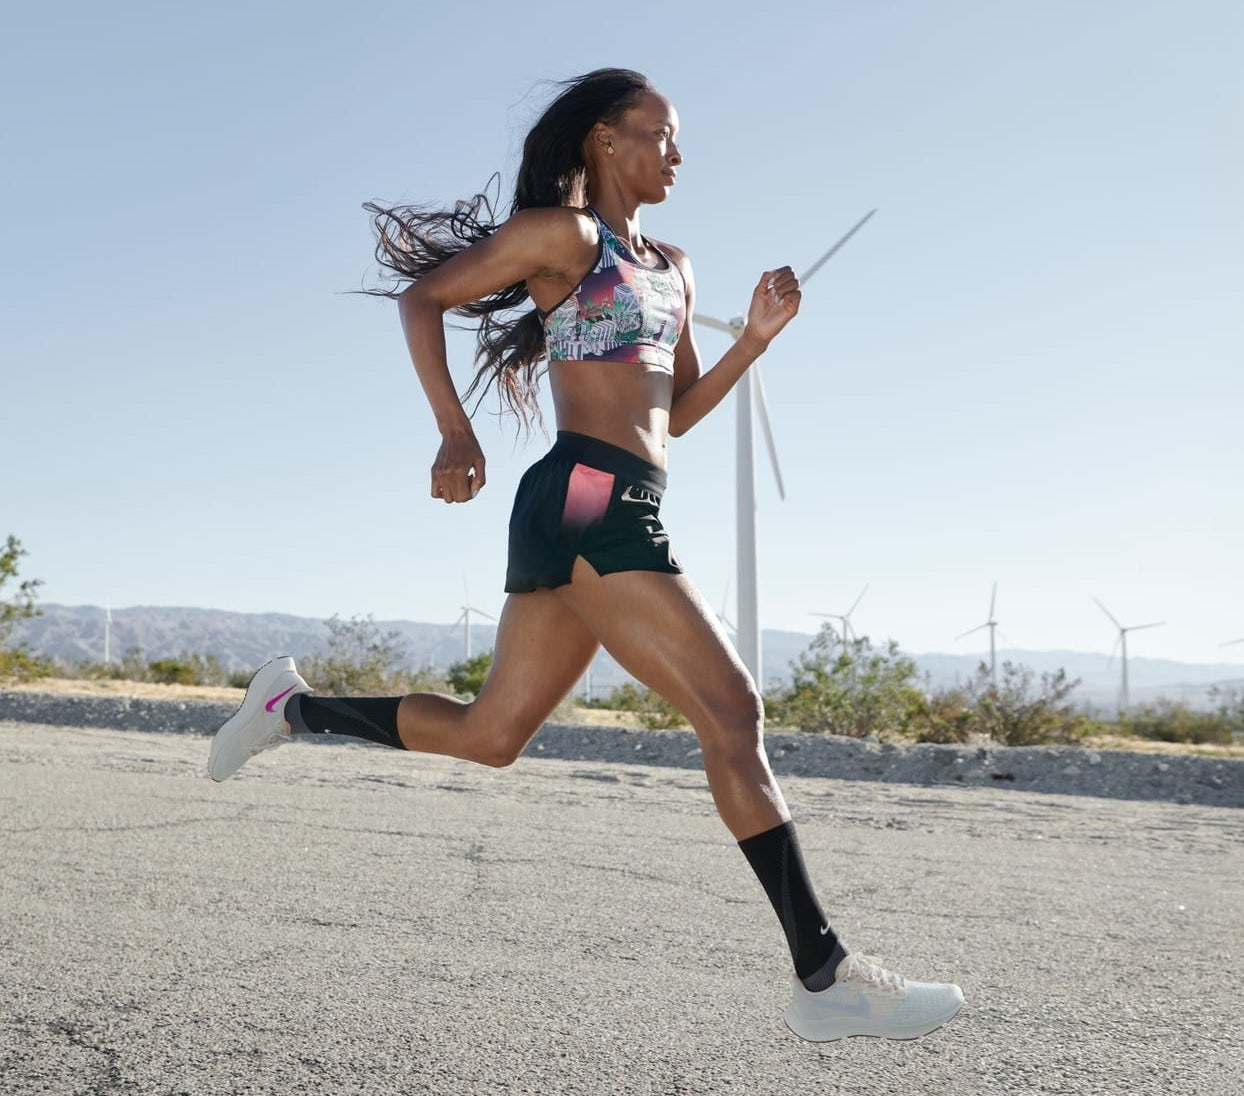 Model running in the lace-up sneakers